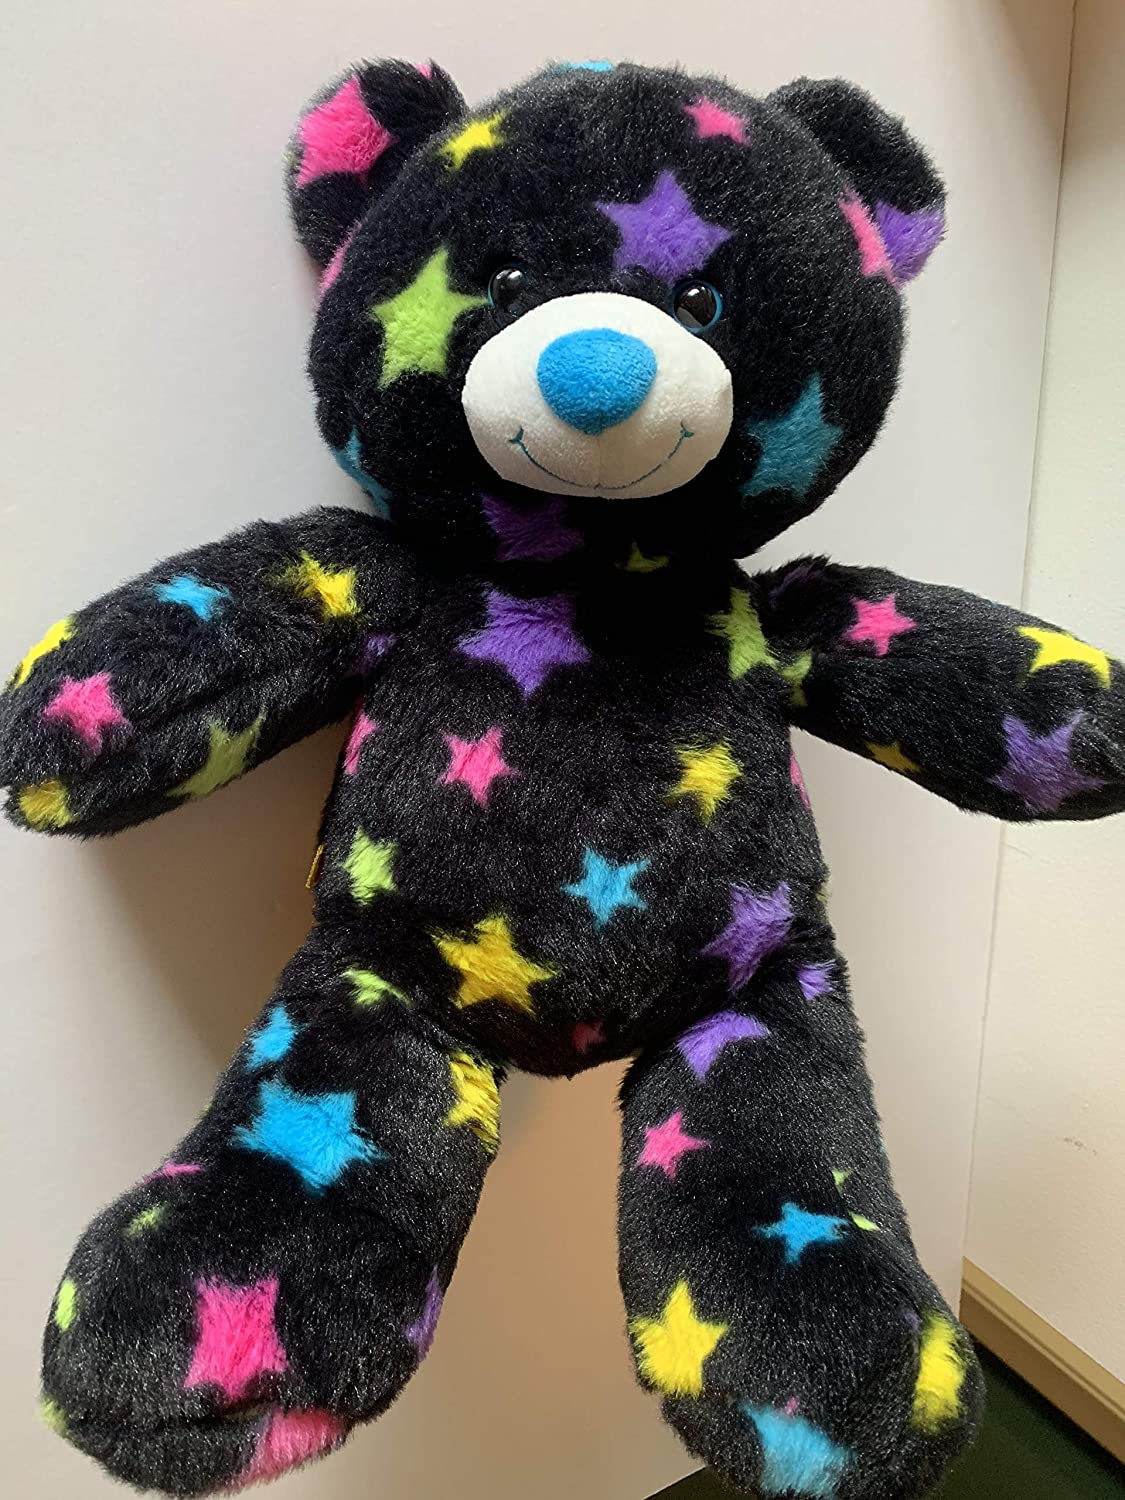 Weighted stuffed animal 3 1//2 lbs sensory toy washable weighted buddy camo or stars teddy bear